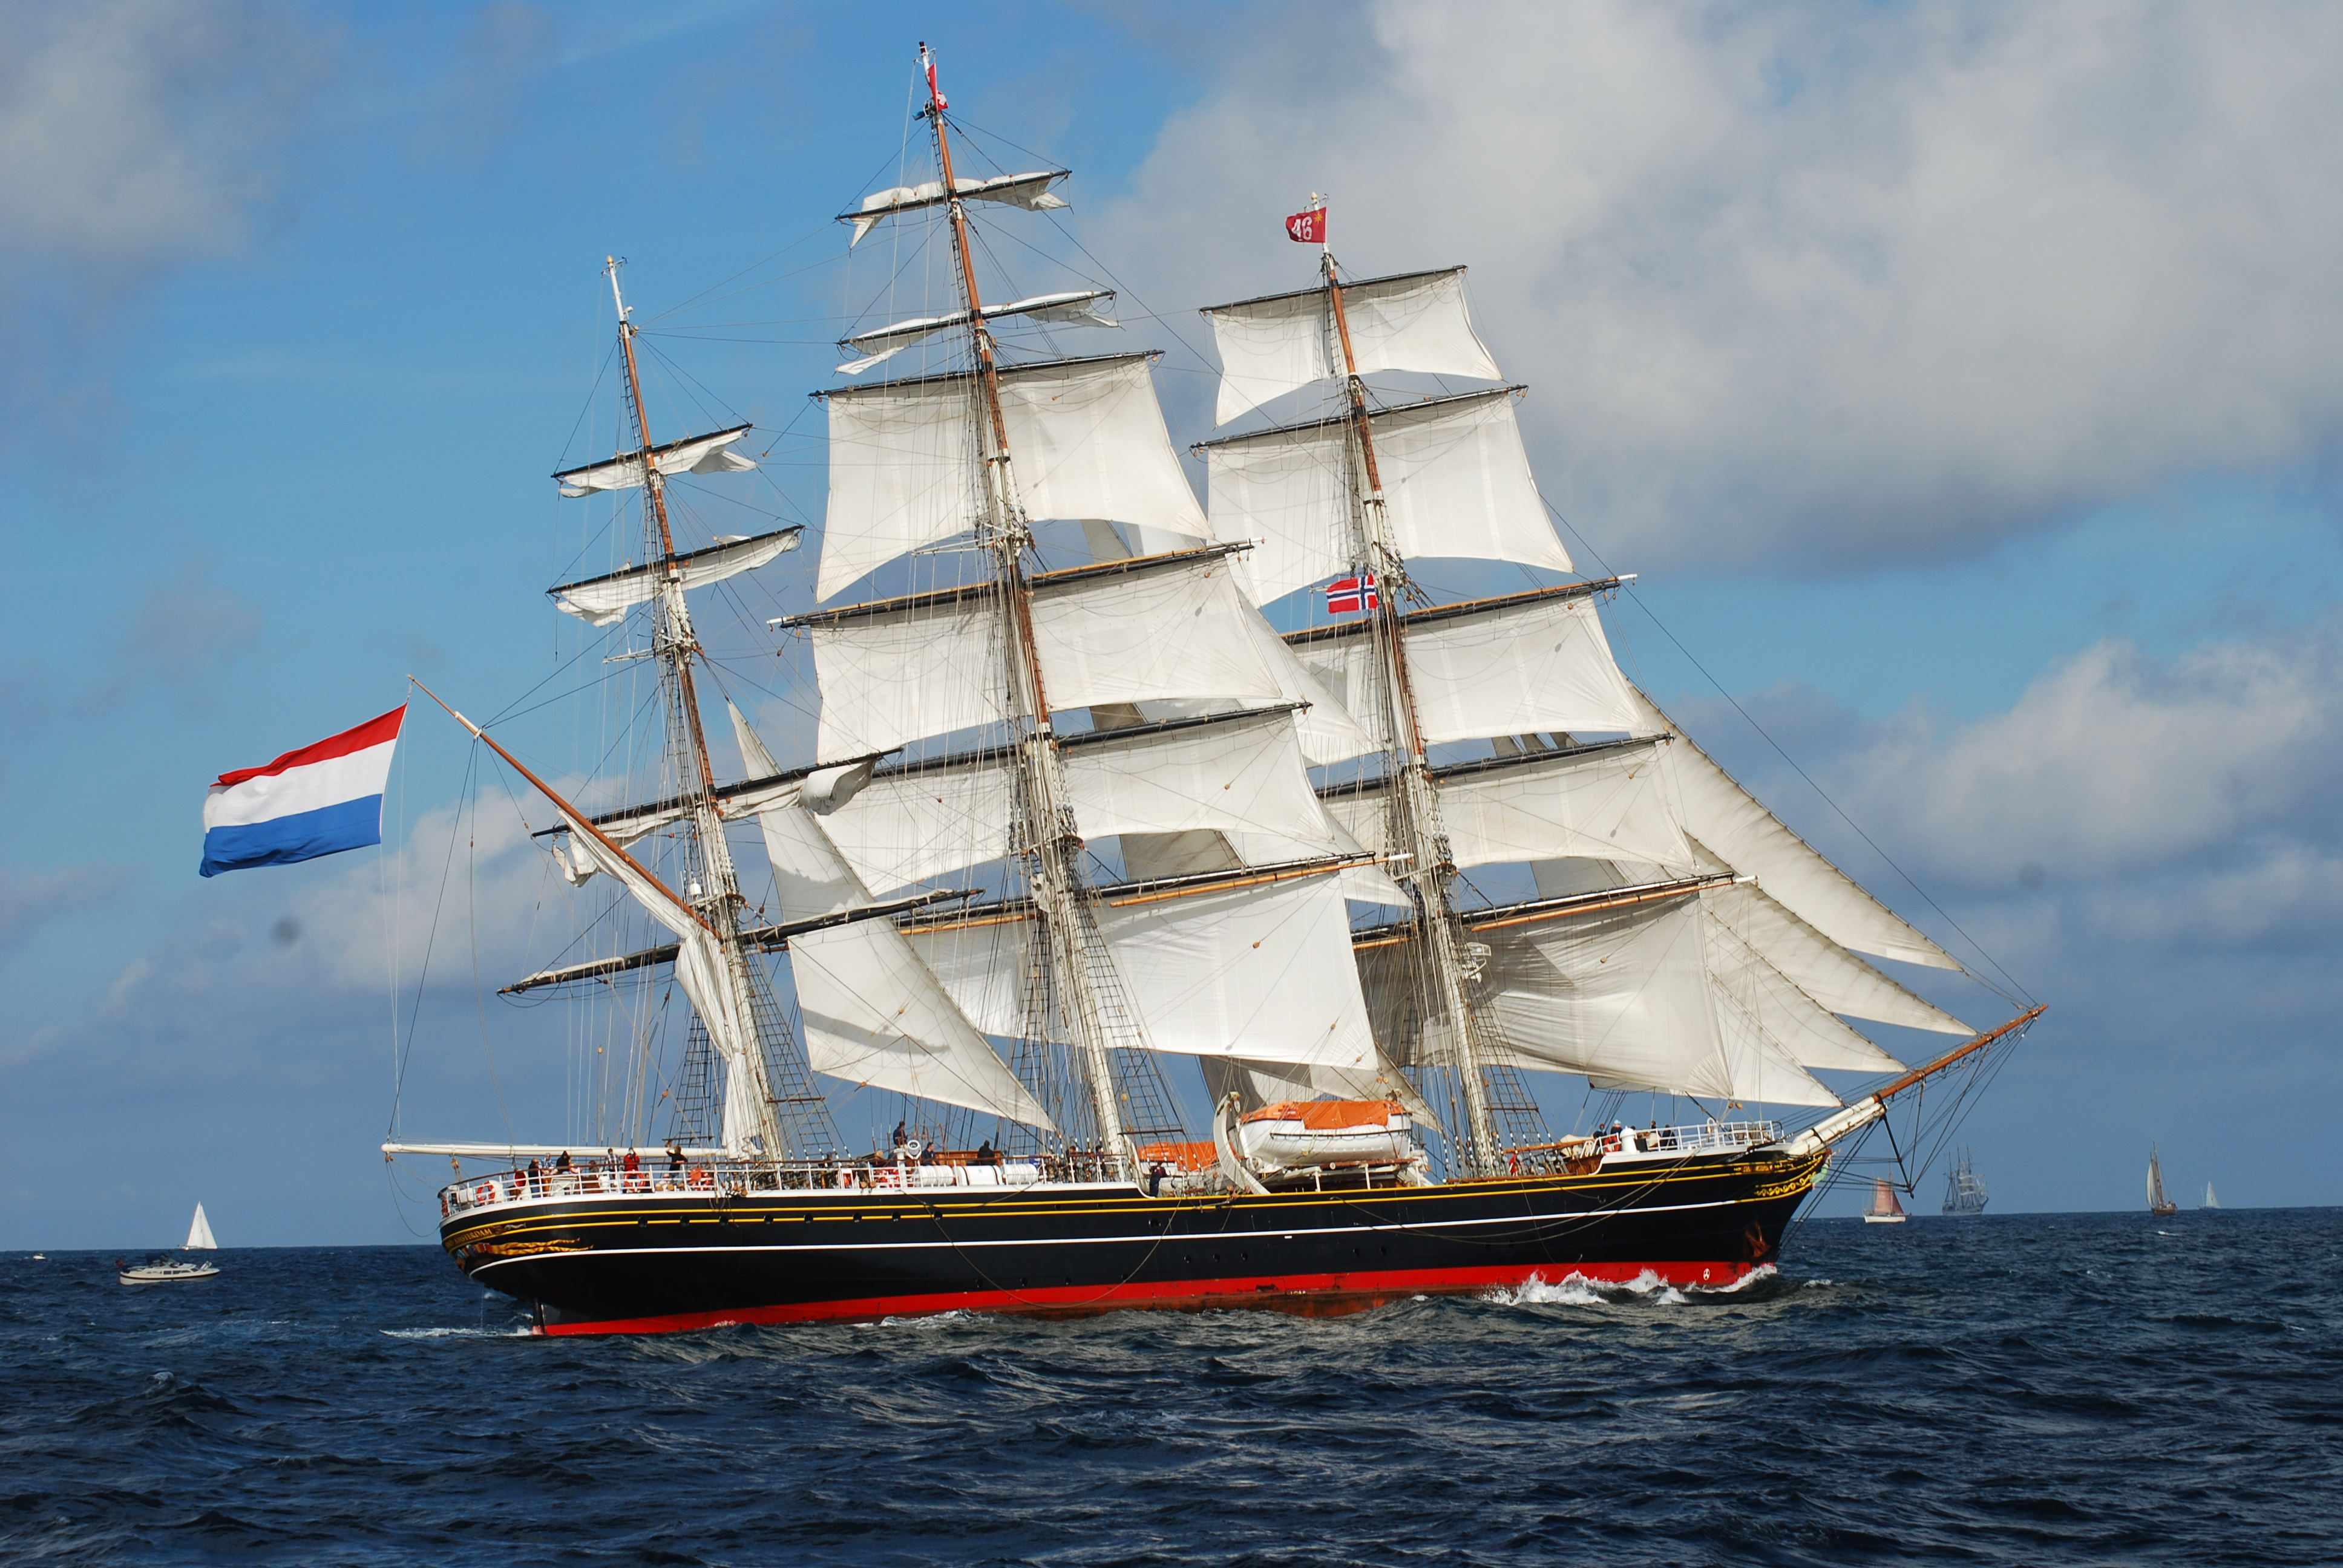 The Stad Amerstam, a sailing vessel that charters for over $100K per week